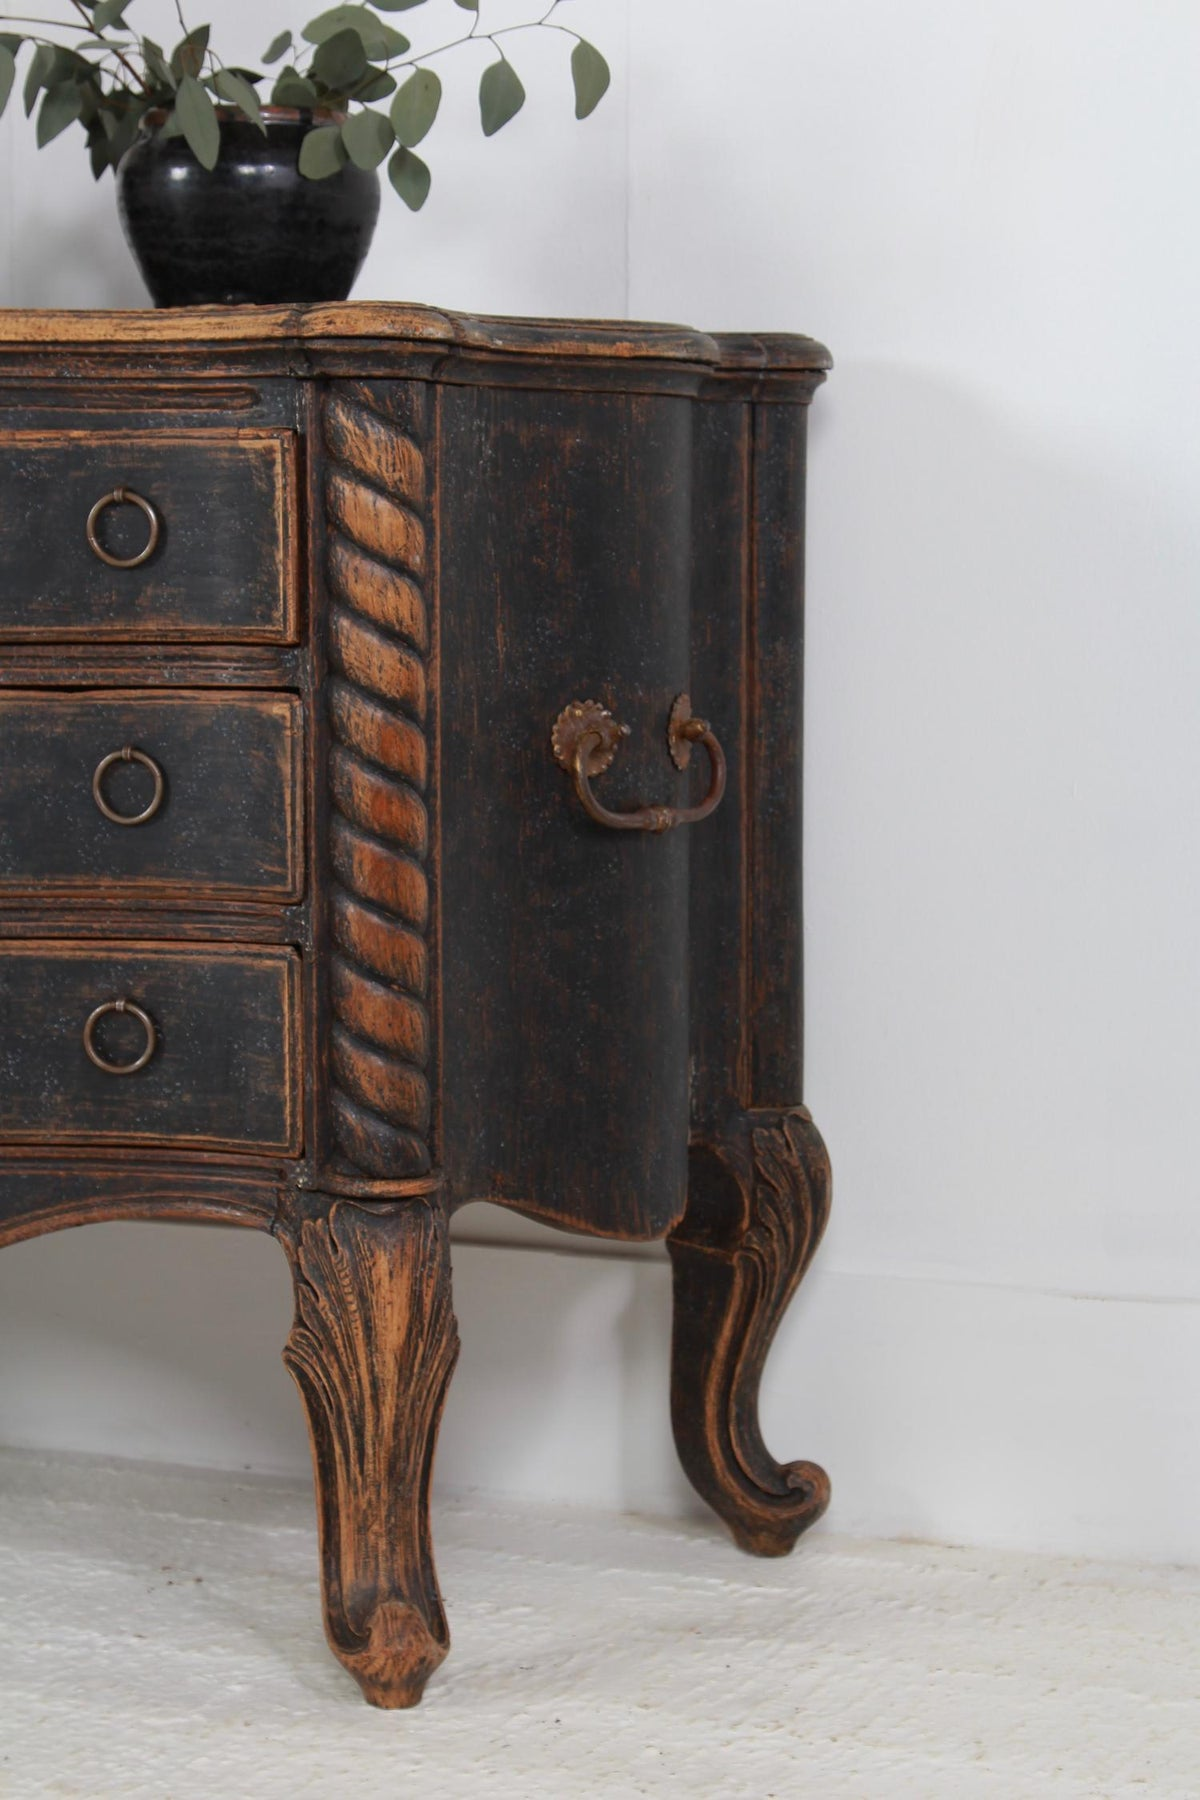 Exceptional Sculptural Period Danish  18thC Rococo Commode